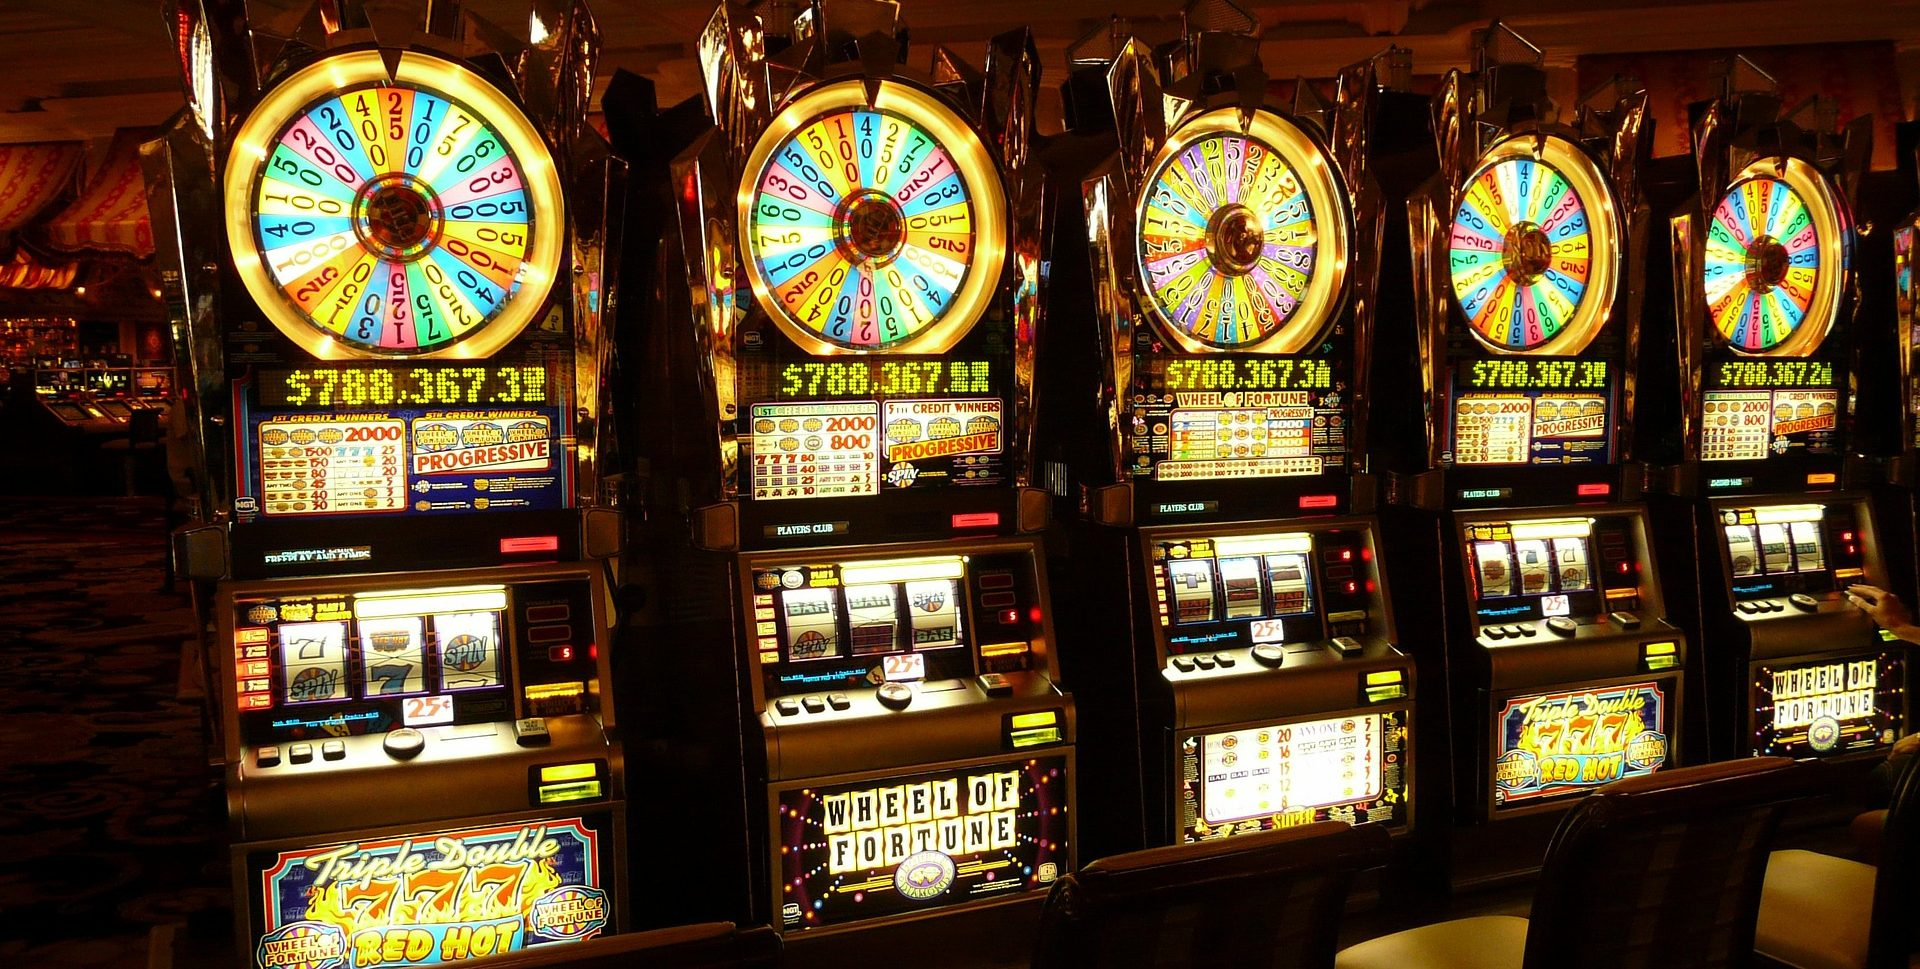 orange slot machines in casinos - Topp 6 Anledningar Varför Folk Besöker Kasinon